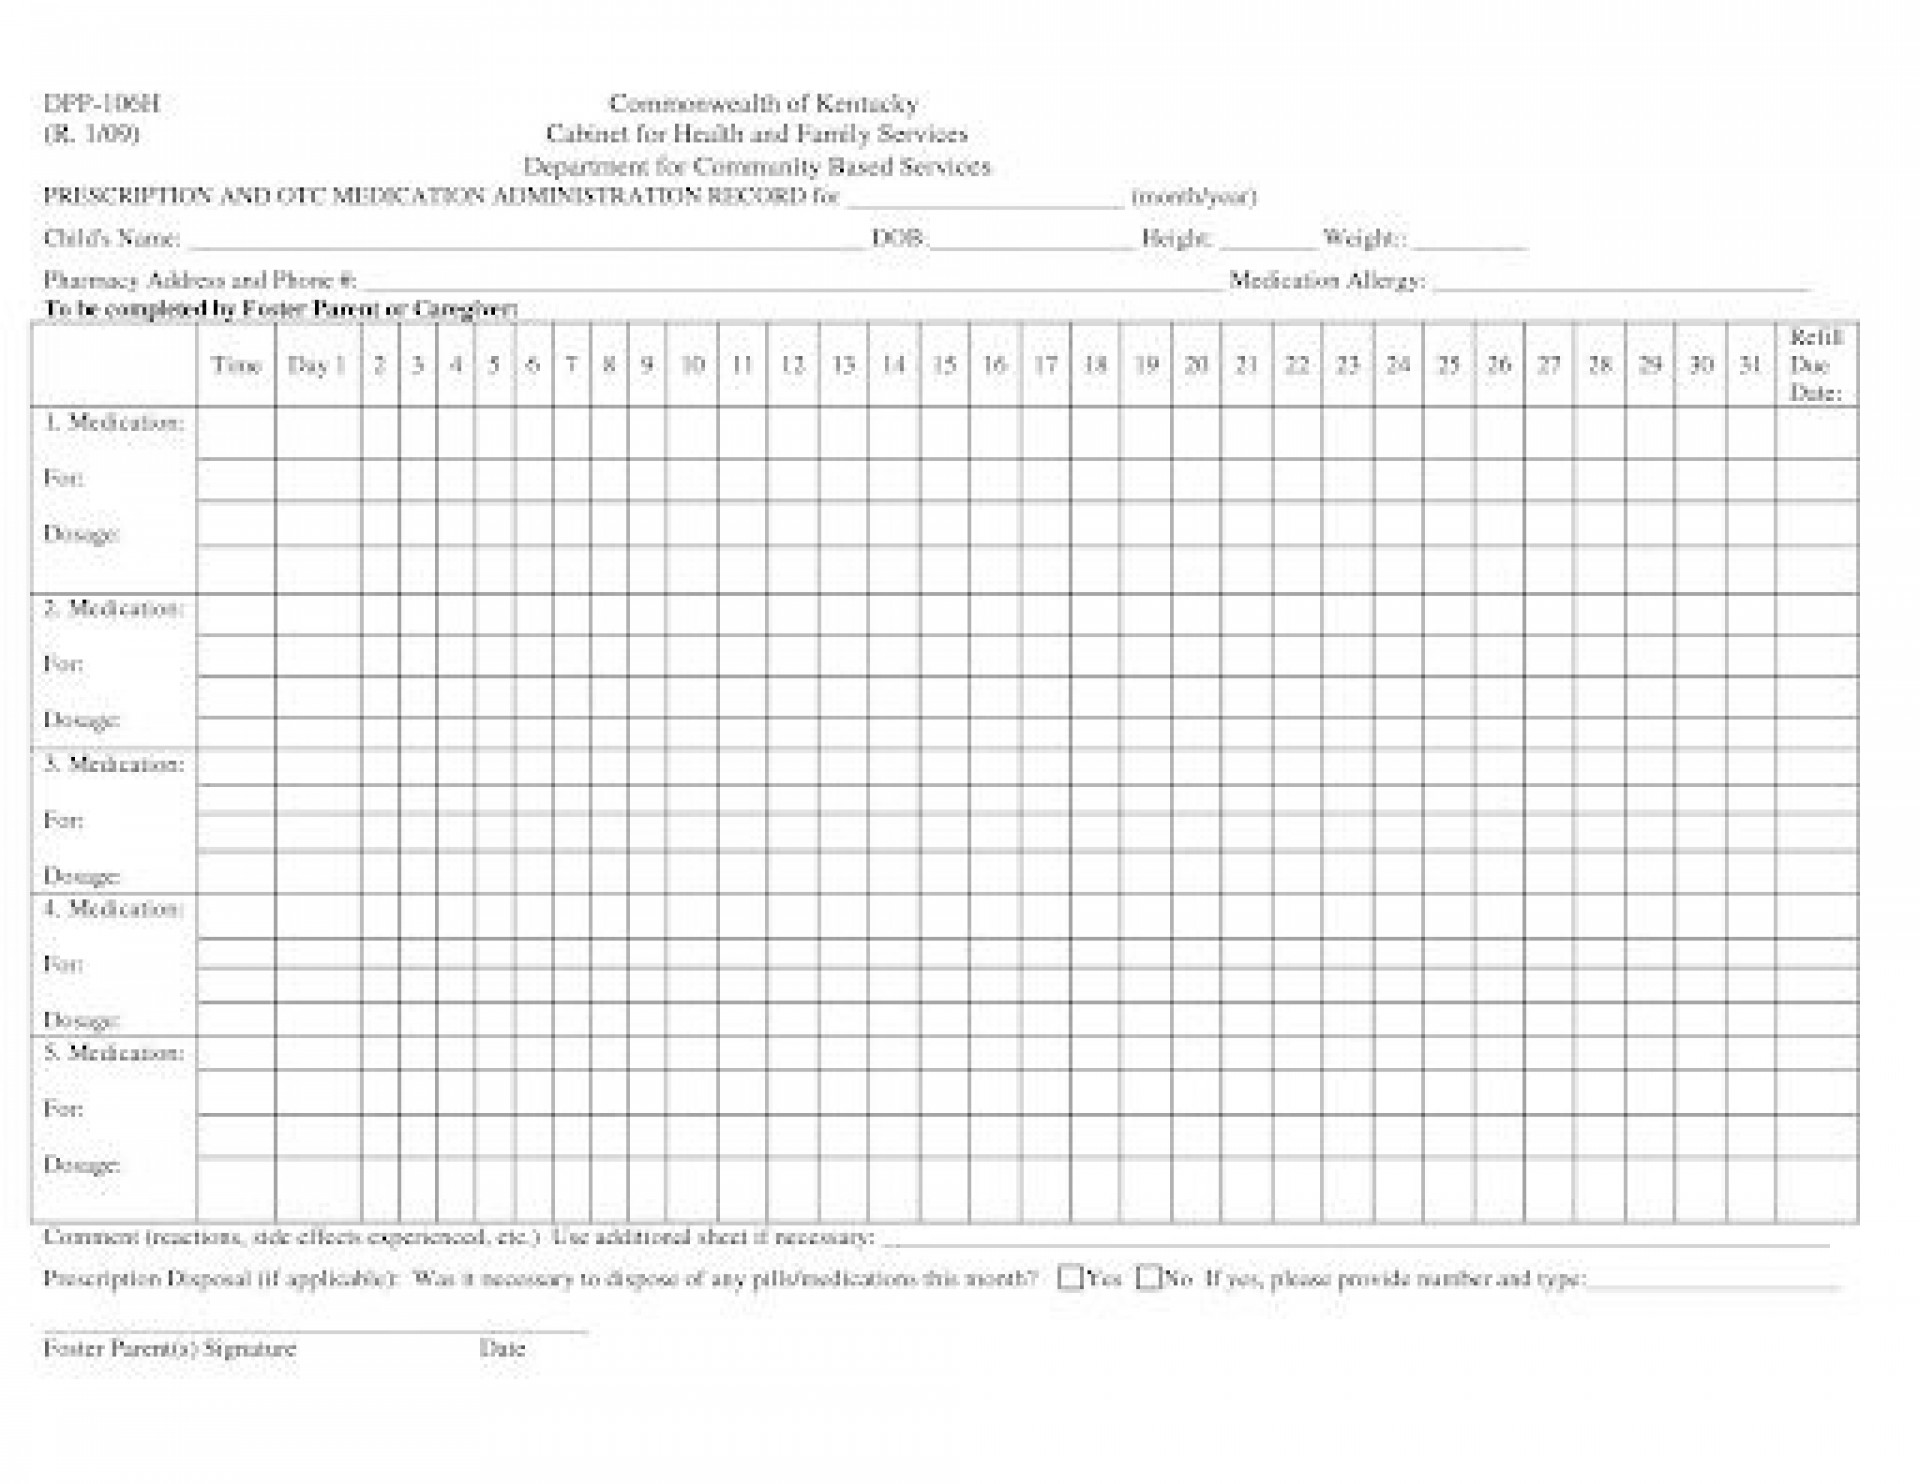 007 Phenomenal Medication Administration Record Template Excel Highest Quality  Monthly1920